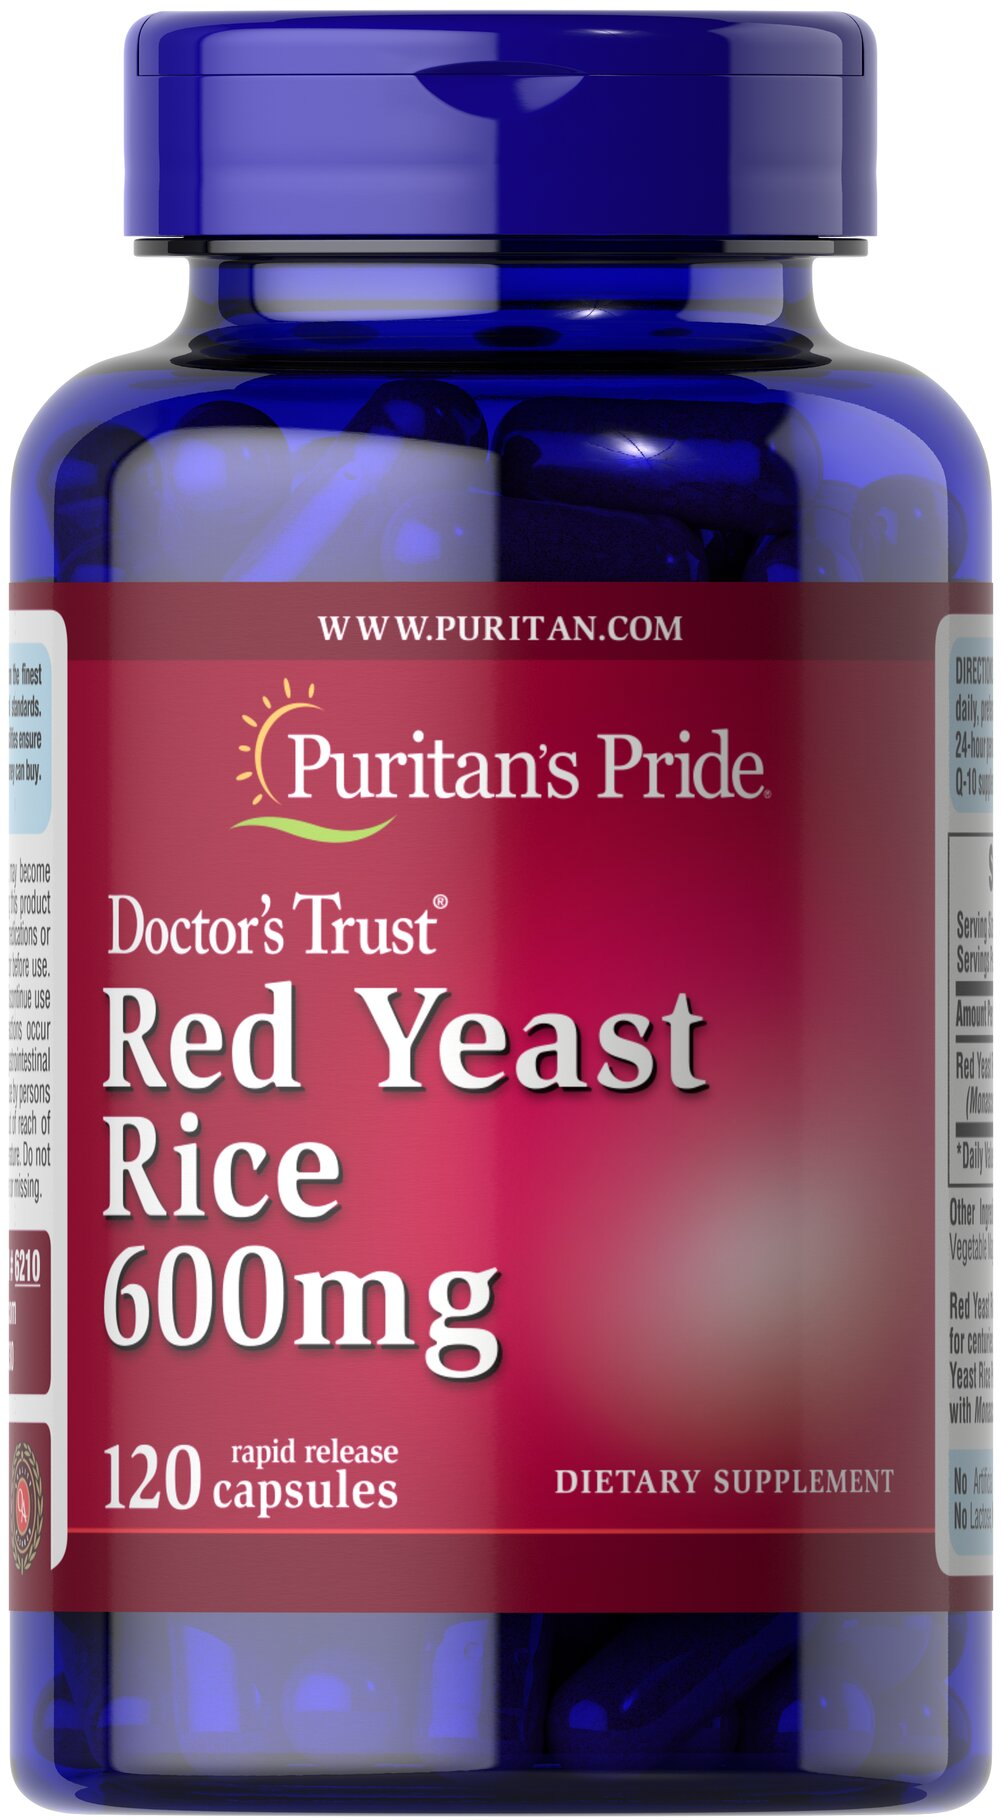 Red Yeast Rice 600 mg <p>Red Yeast Rice has been a staple food of the traditional Chinese diet for centuries. Valued as a main food source as well as for other uses, Red Yeast Rice can be a wonderful addition to your diet.**  Two capsules contain 1200 mg of Red Yeast Rice Powder from the Chinese botanical Monascus purpureus.</p> 120 Capsules 600 mg $17.49